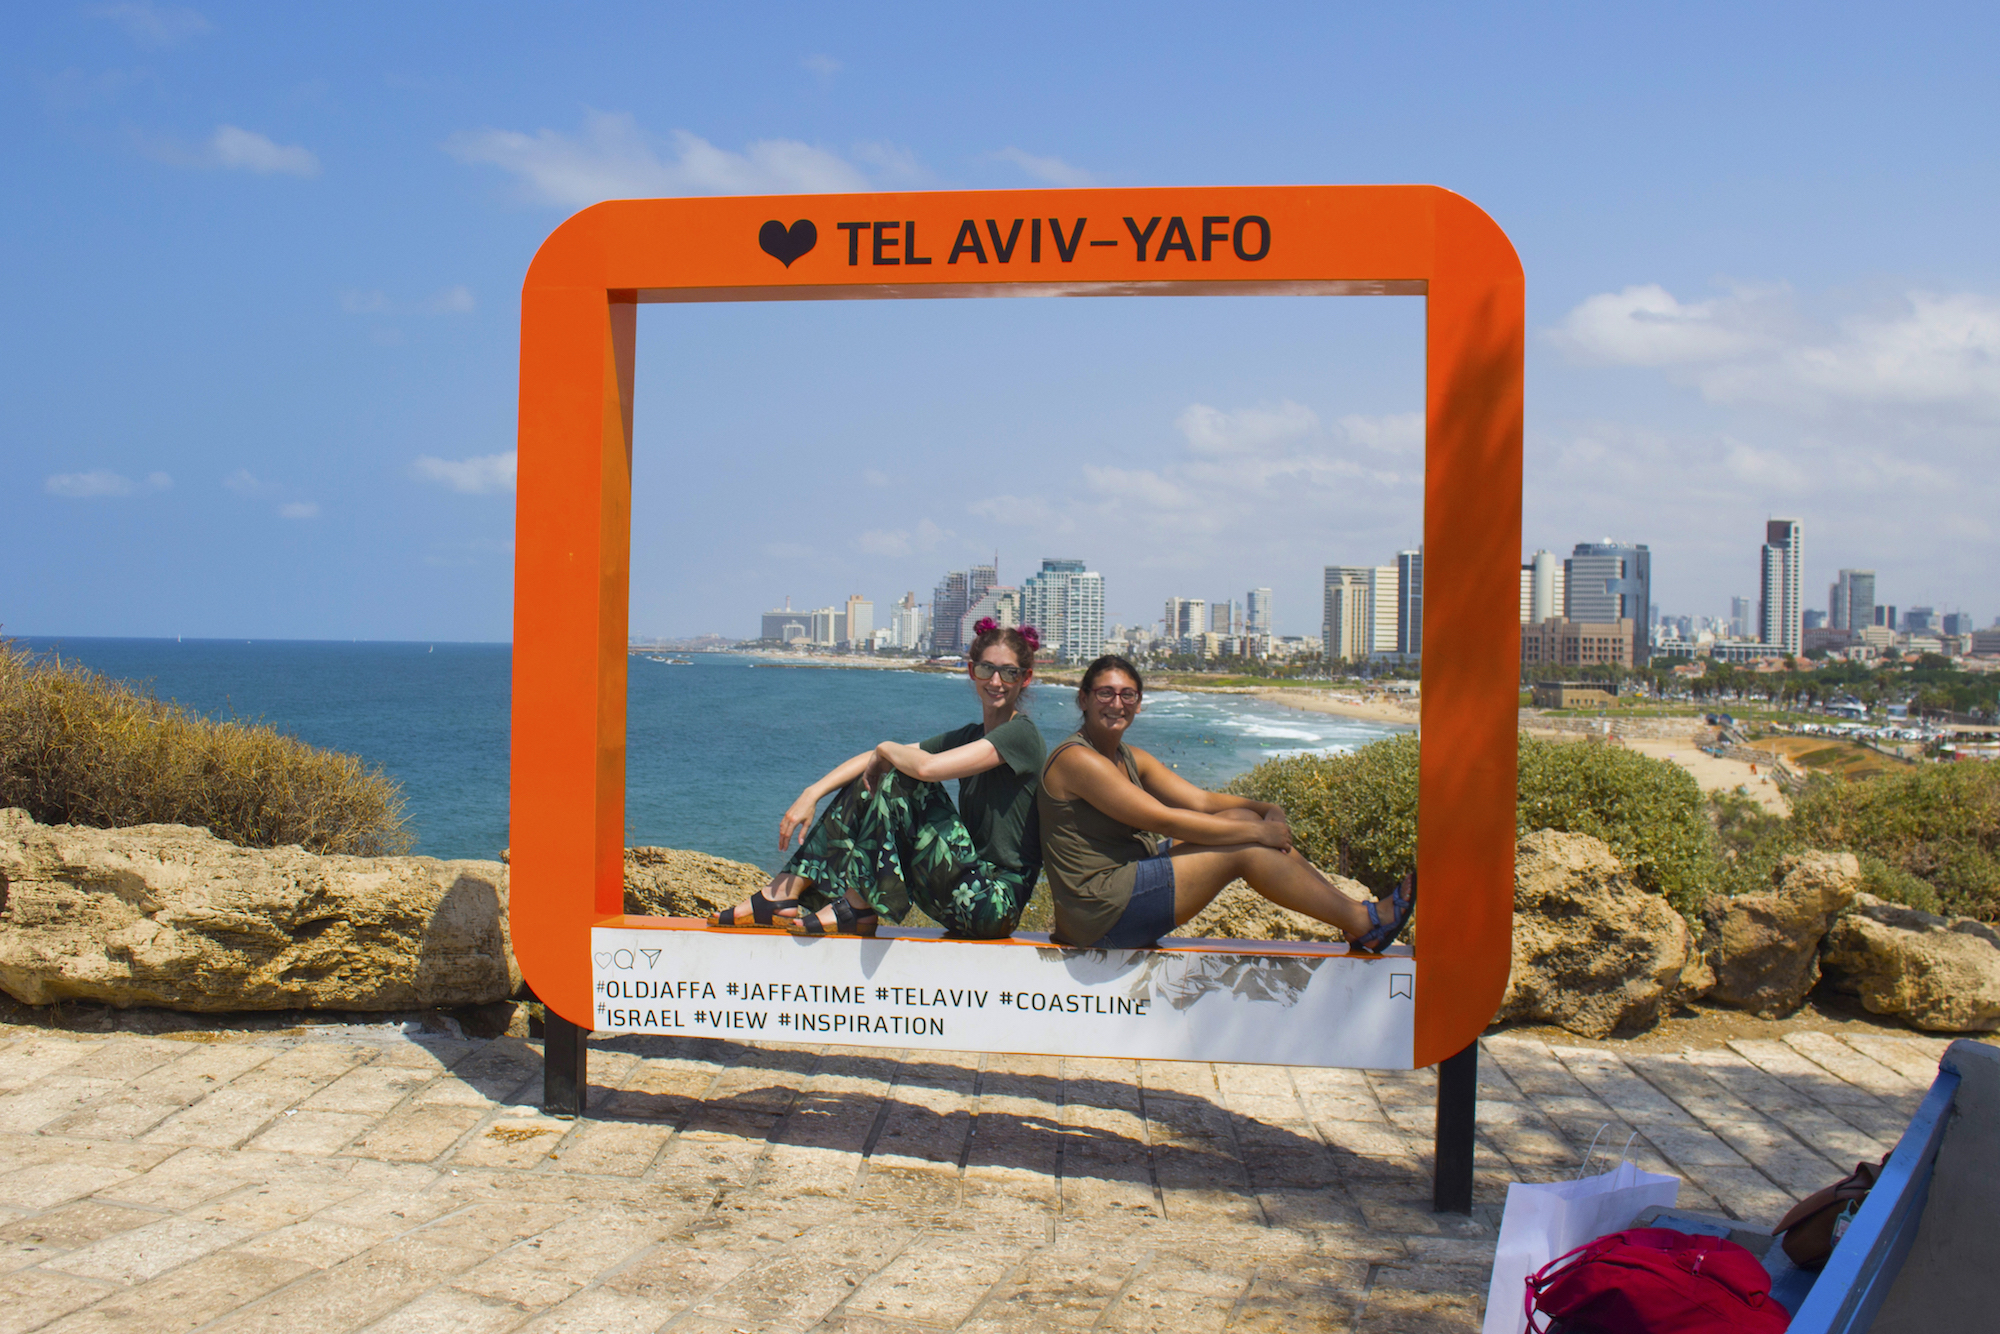 Geena Matuson and Heather Luster in Tel Aviv-Yafo, Israel. See more @geenamatuson #thegirlmirage.